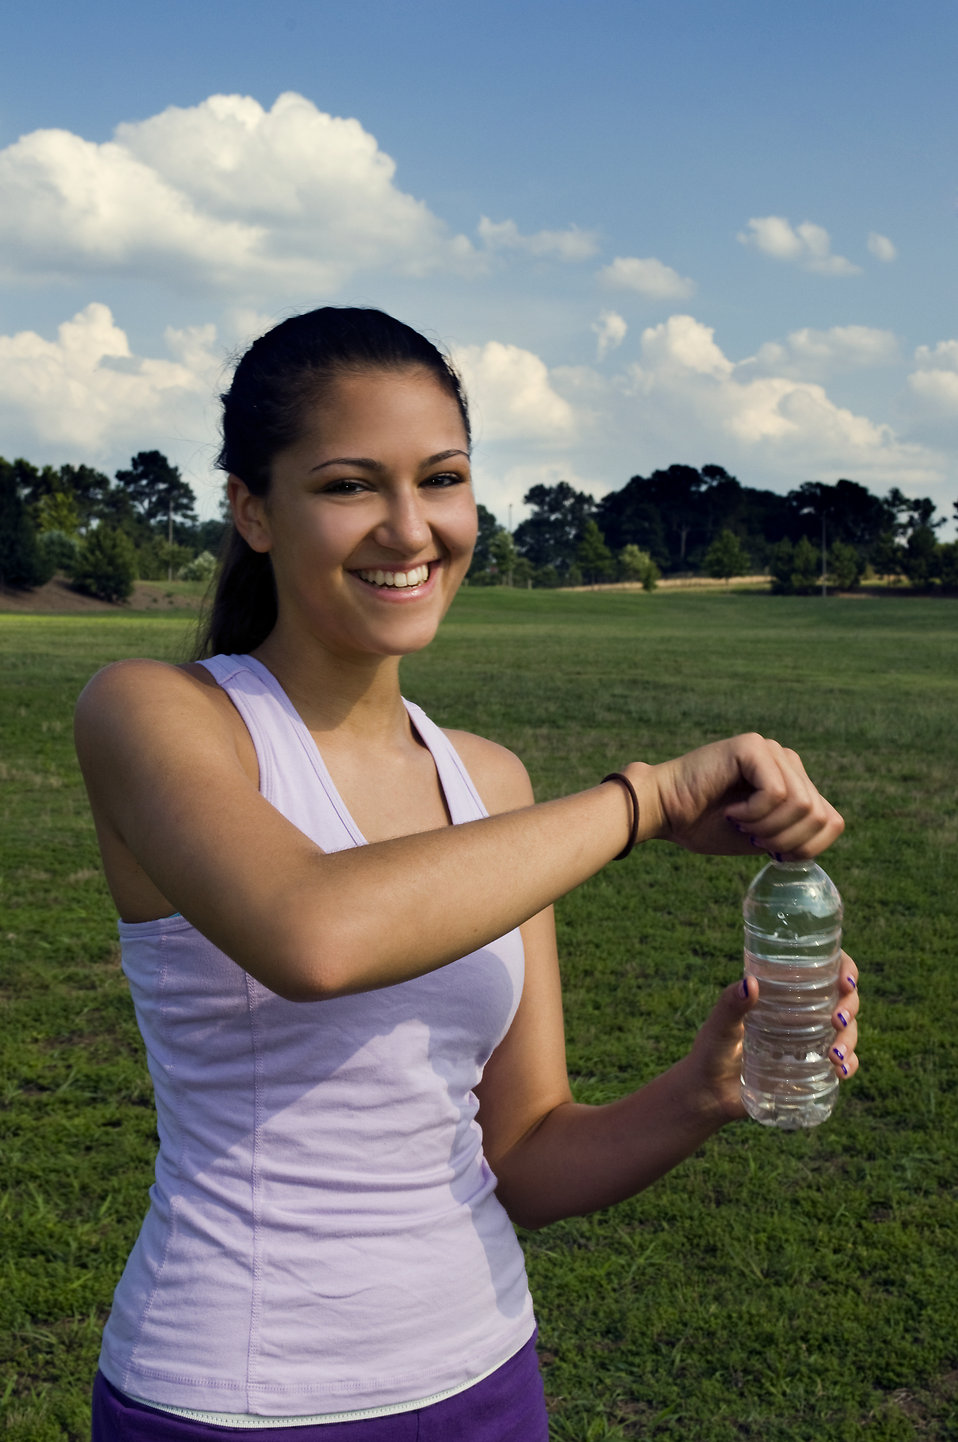 woman-drinking-water-bottle.jpg